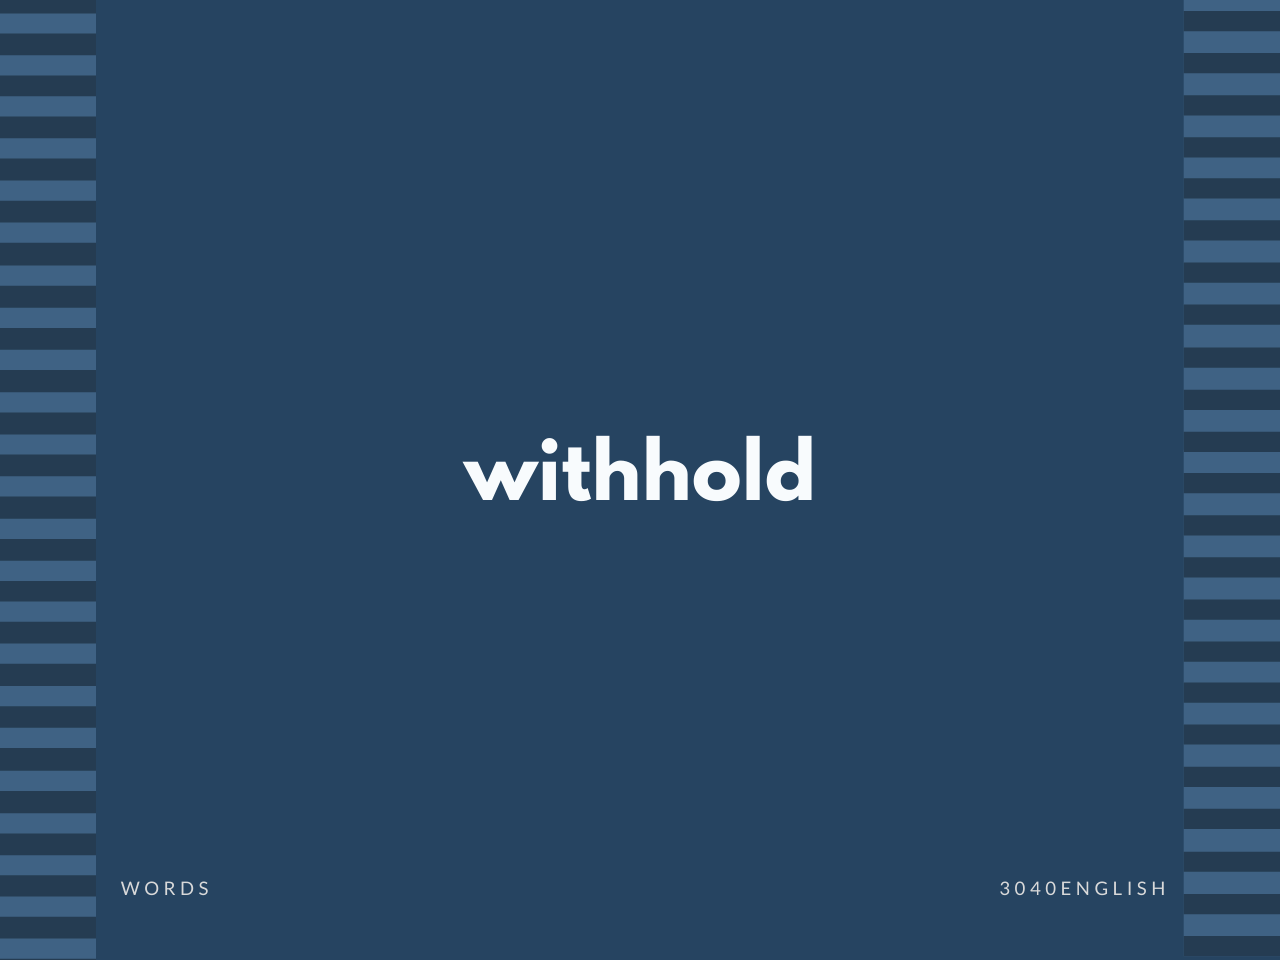 withhold の意味と簡単な使い方【音読用例文あり】